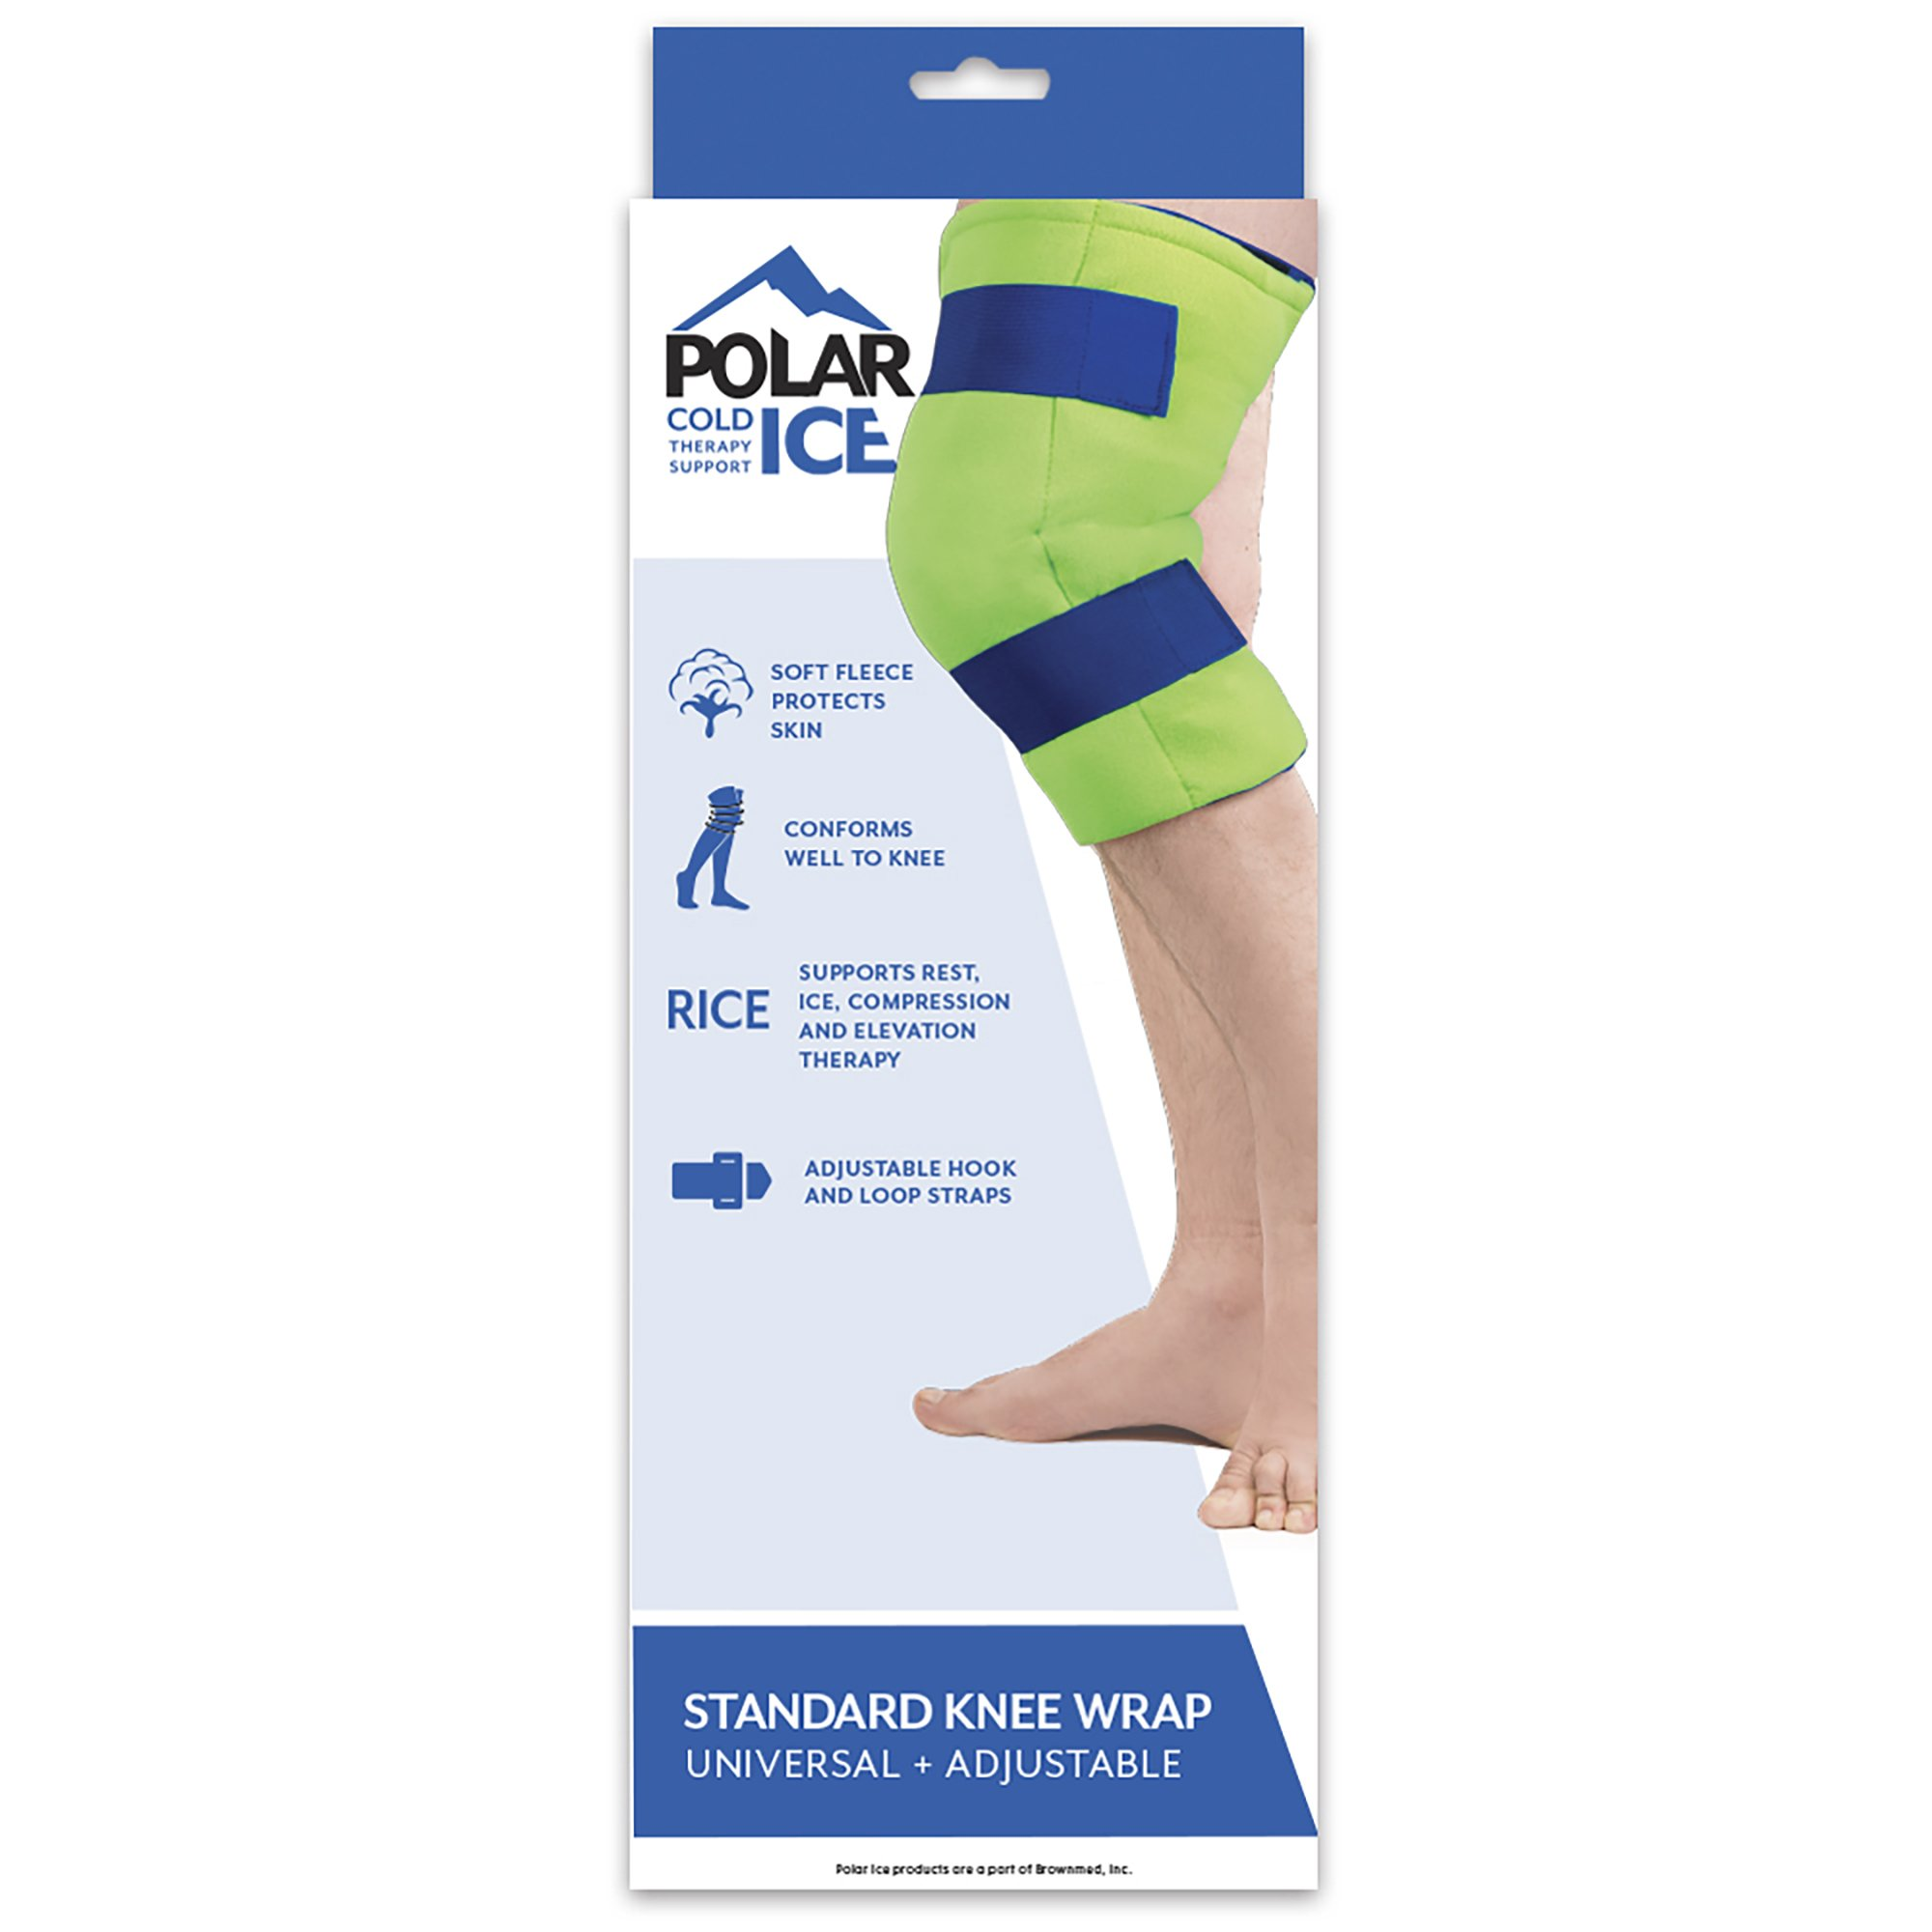 Polar Ice Large Knee Wrap Cold Therapy Wearable Ice Pack Adjustable Hook and Loop Closure (Color May Vary) by Brownmed (Image #5)